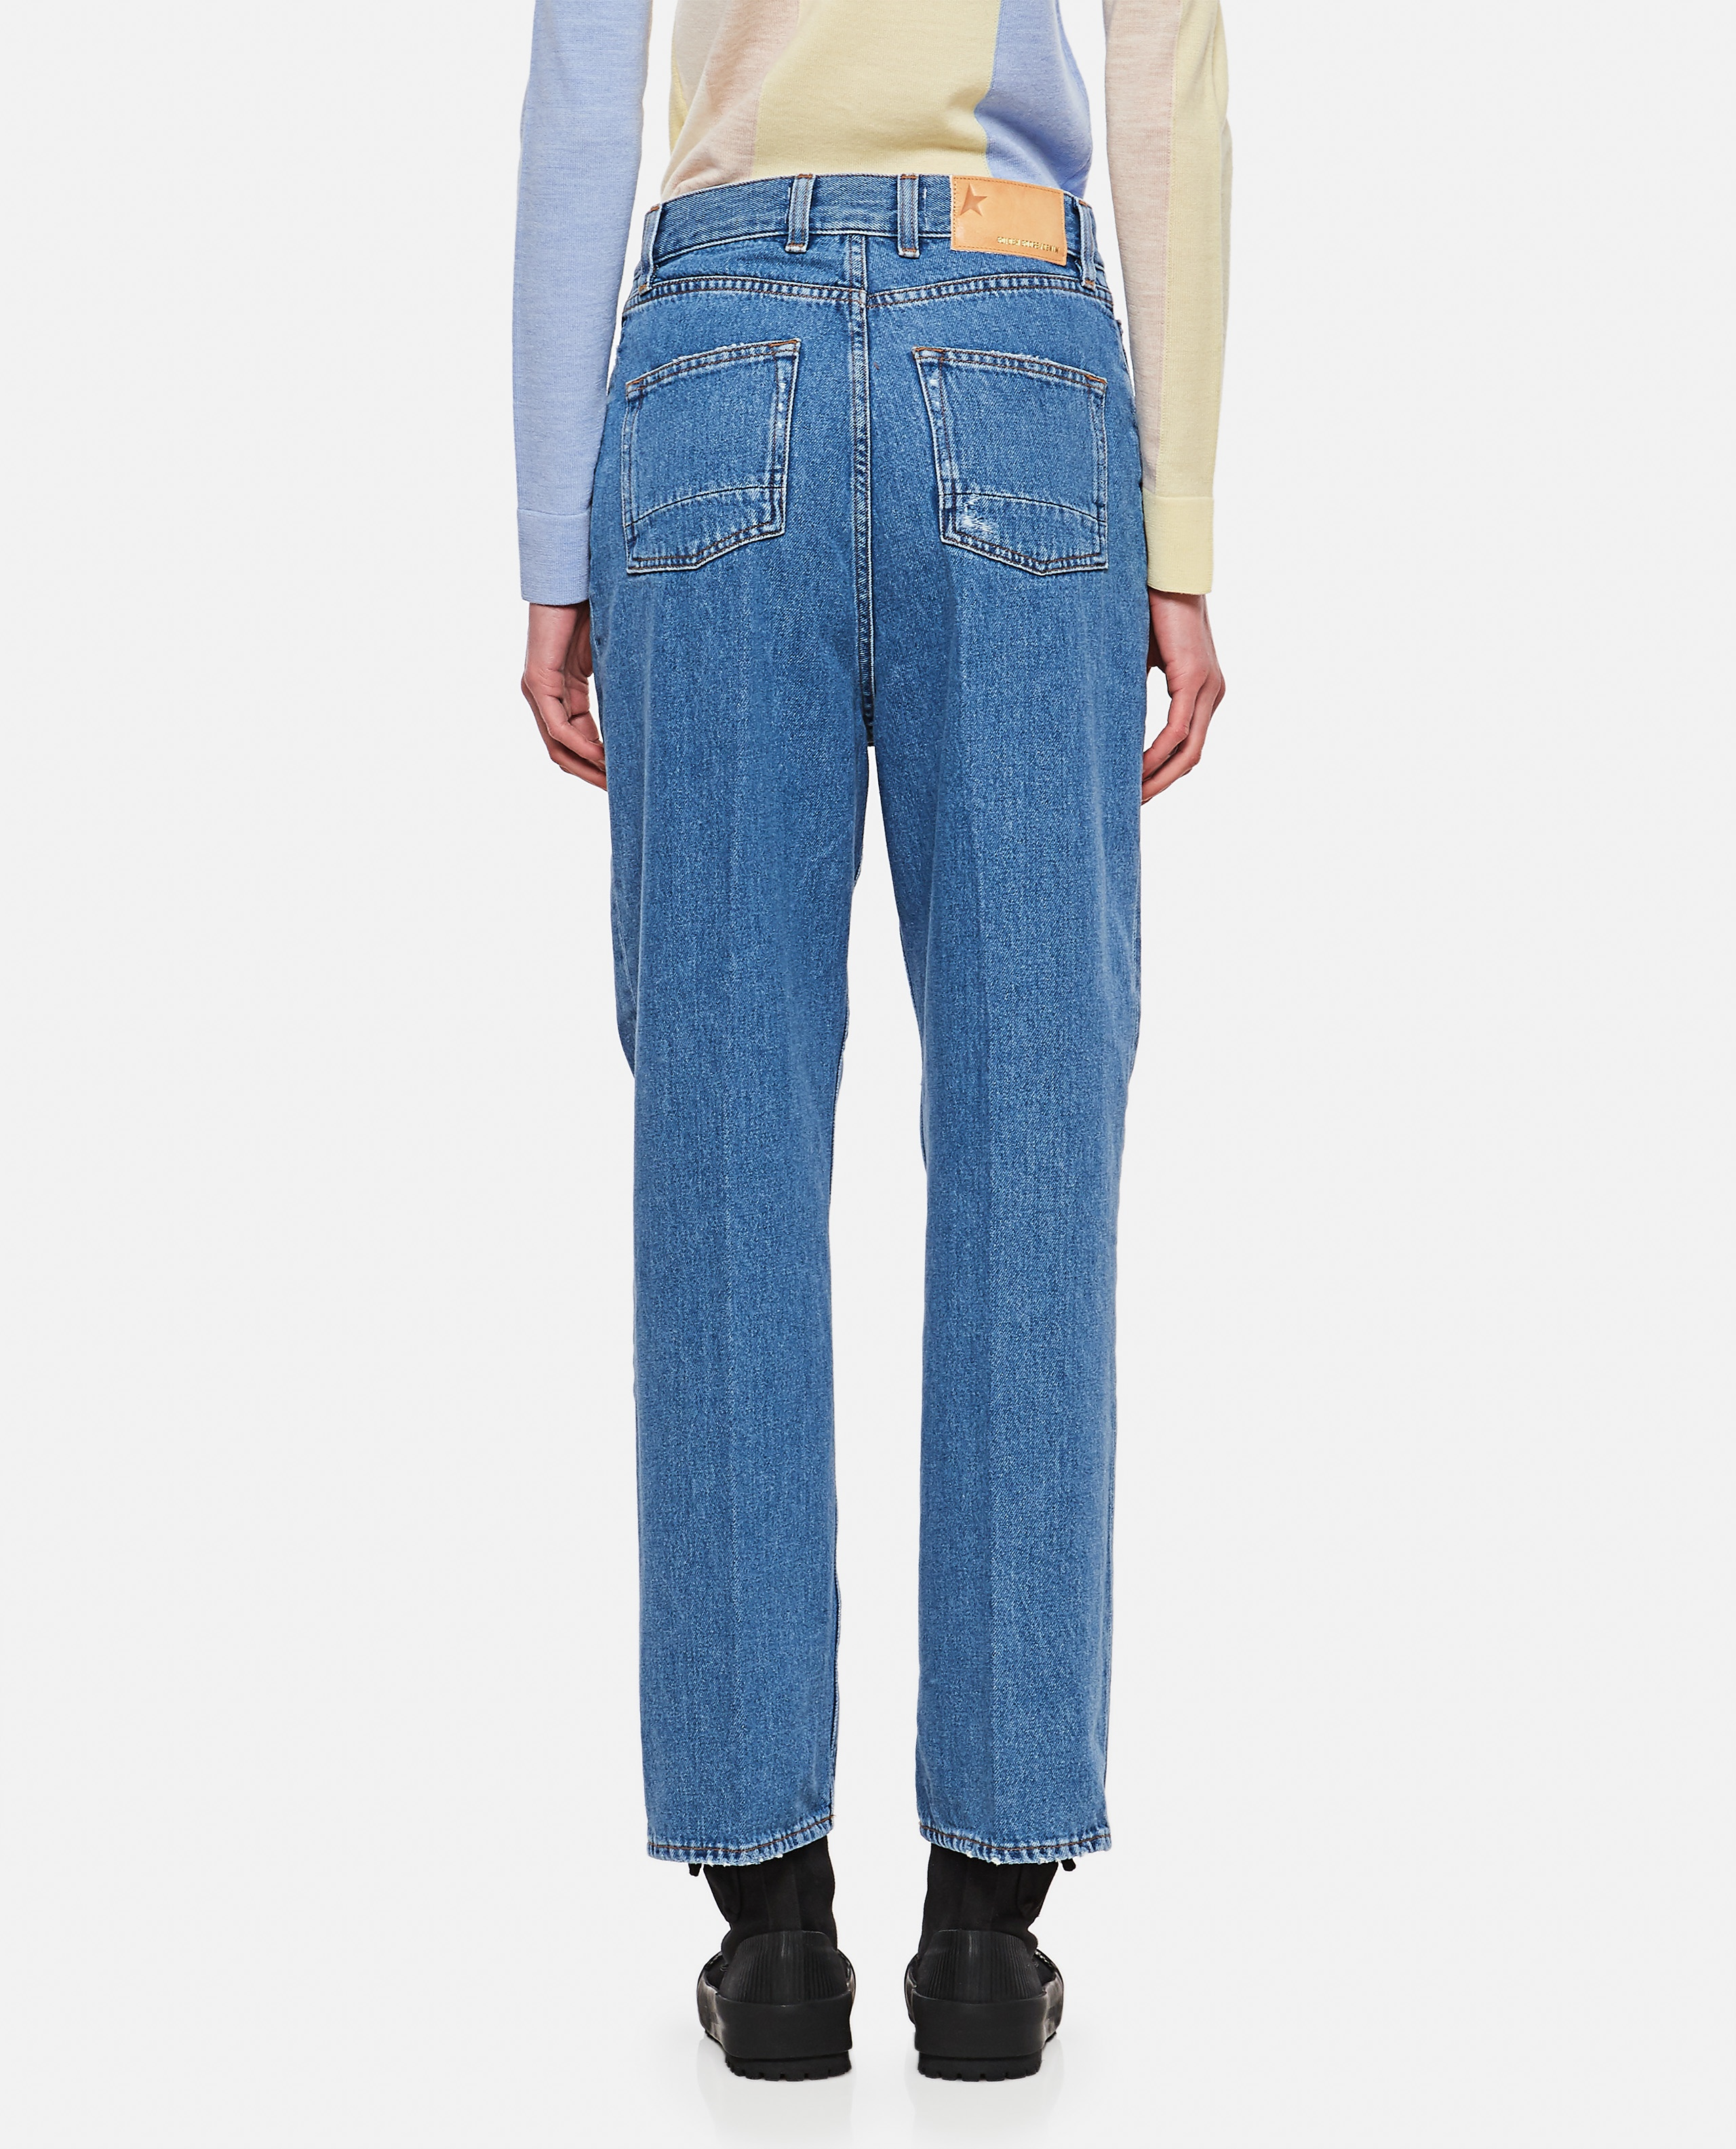 Kim jeans in denim with applied crystals Women Golden Goose 000286420042265 3